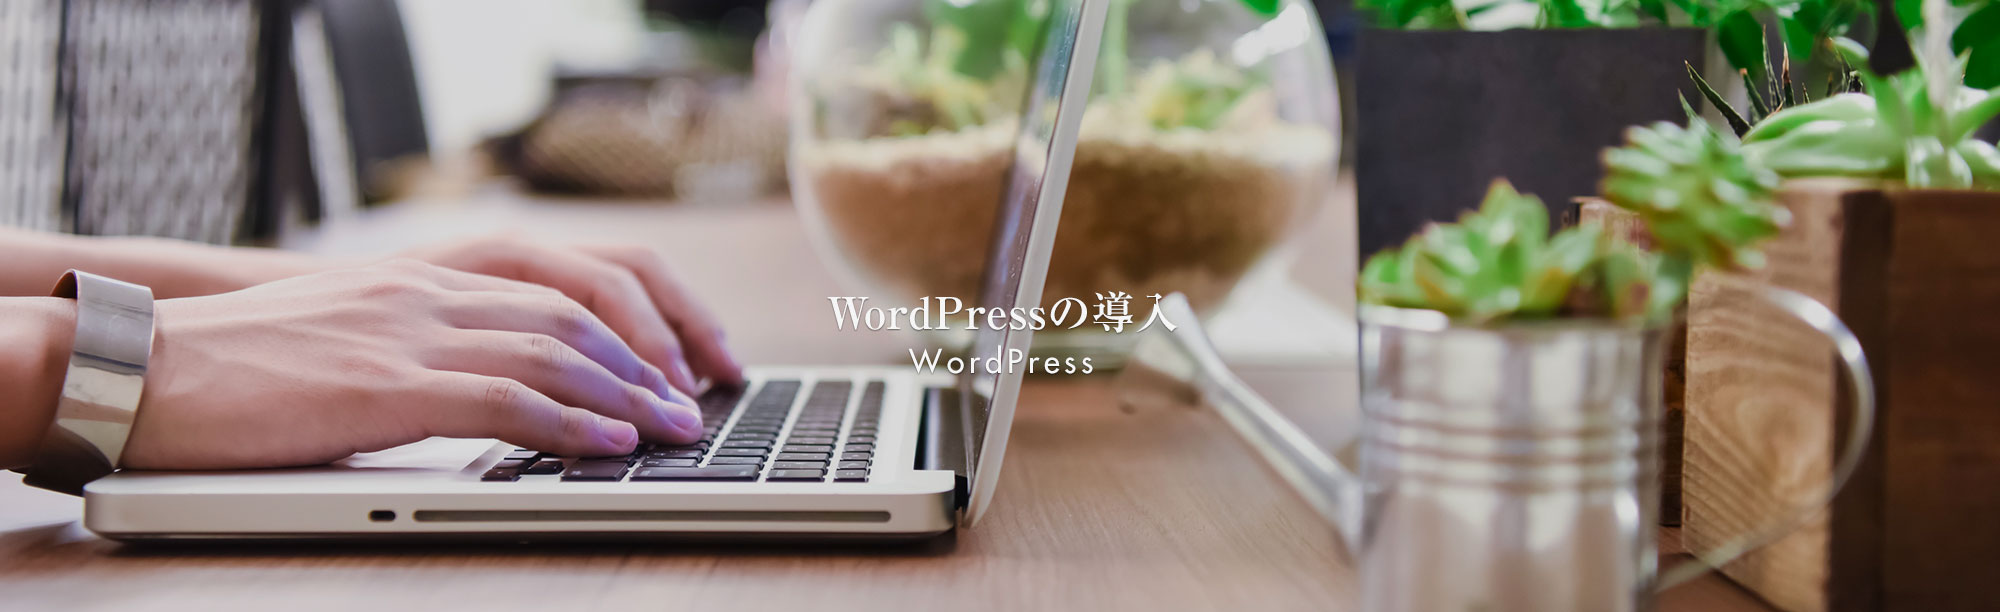 WordPressの導入